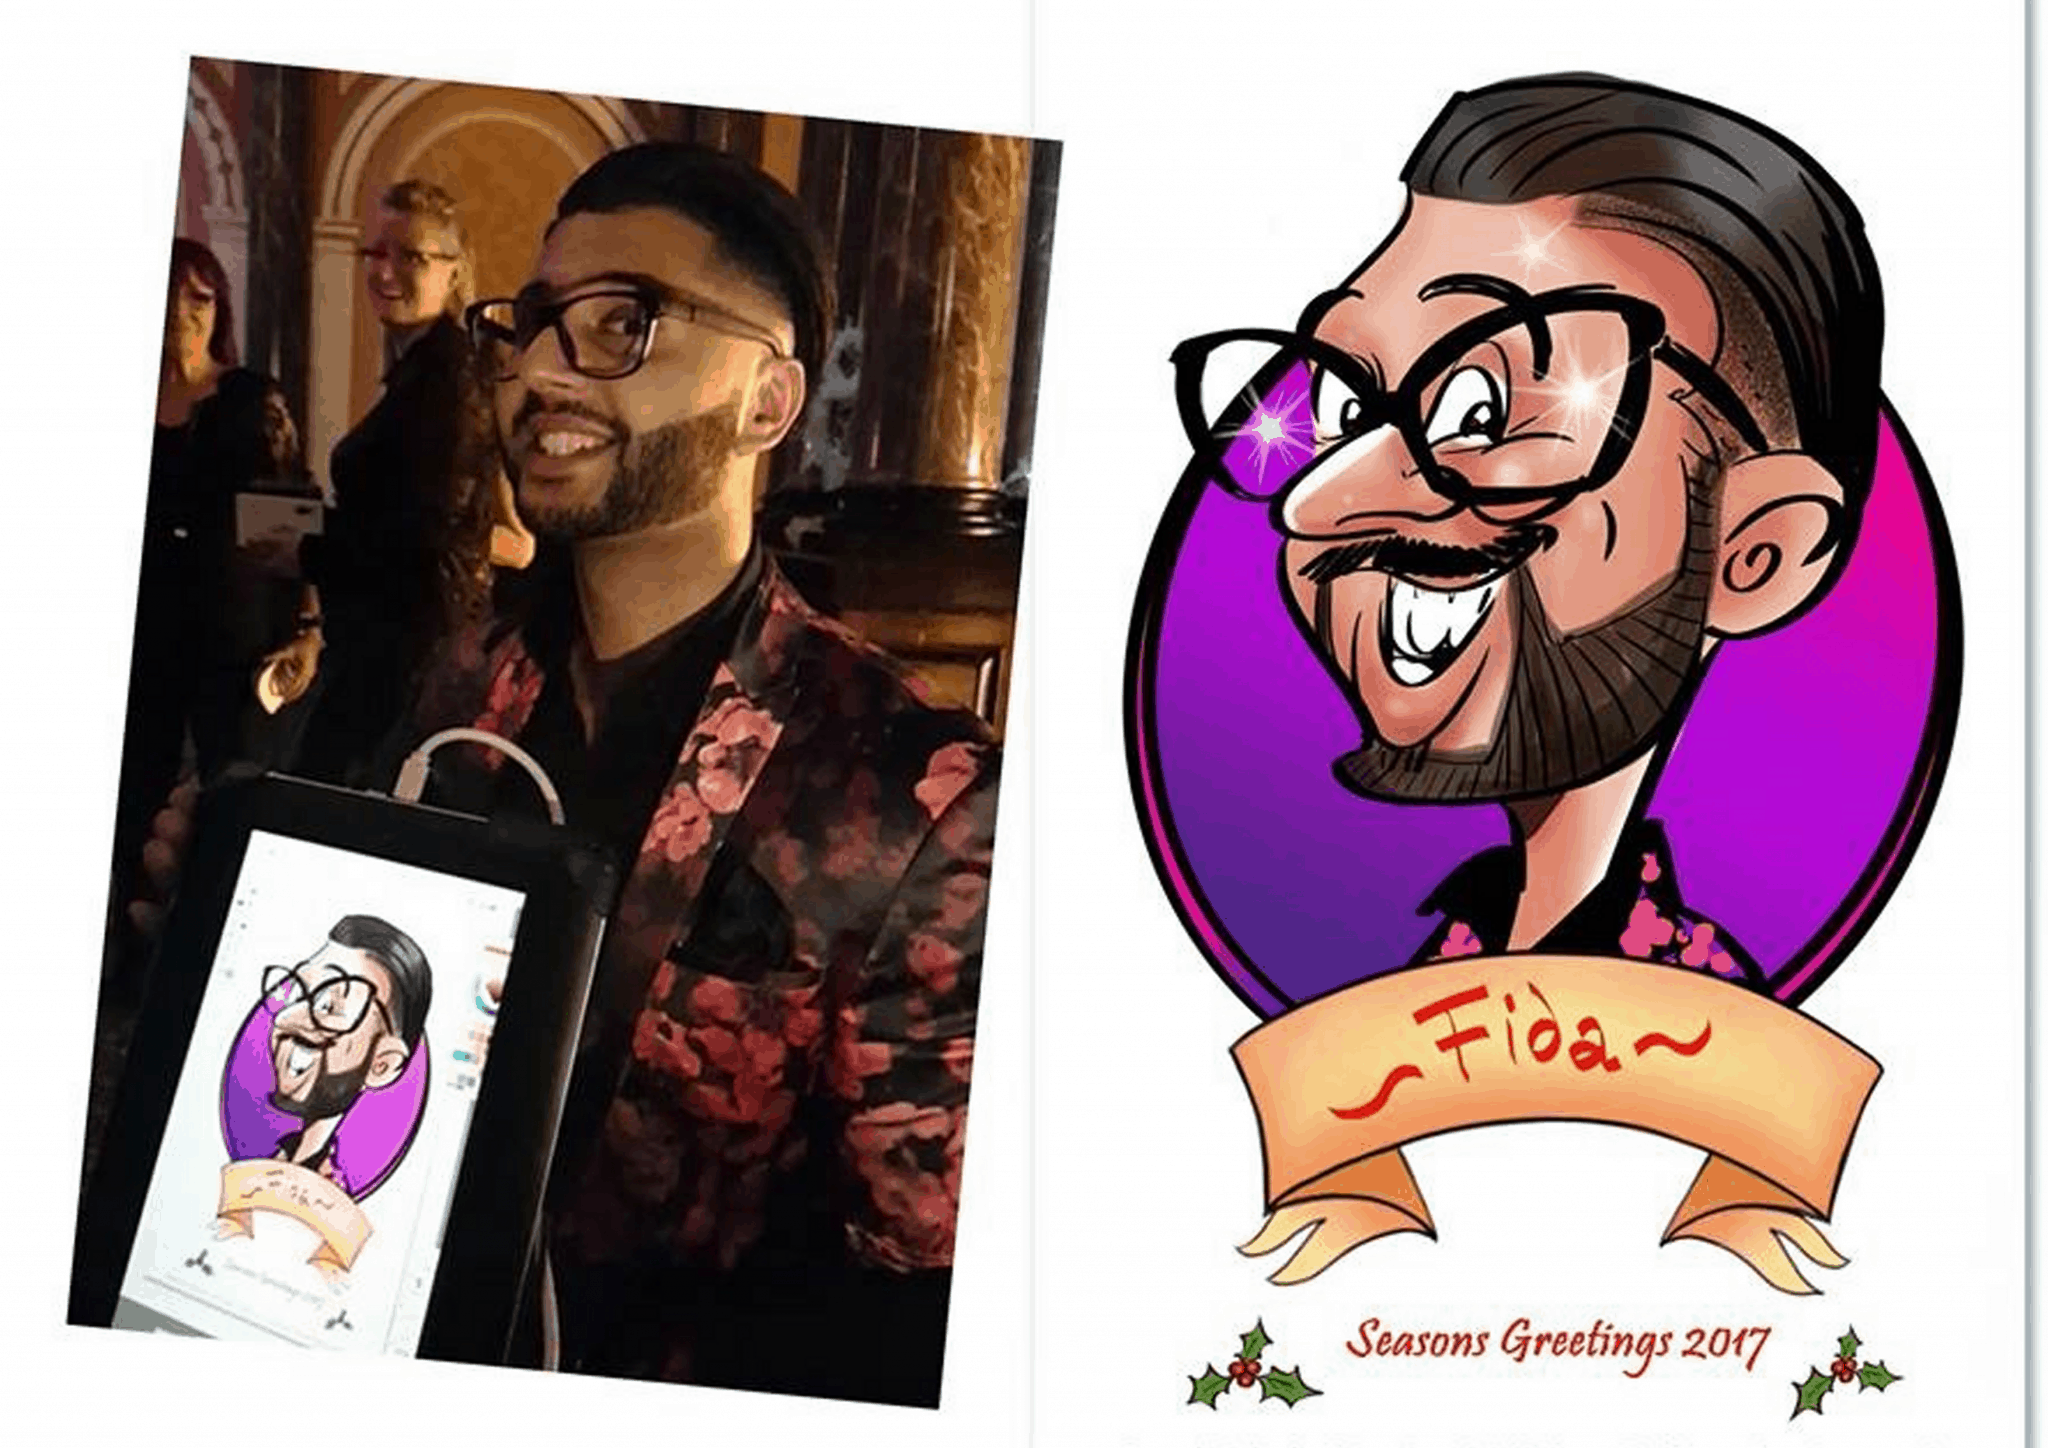 Live_digital_caricature_at_Gibson_Hall_by_Luisa__Calvo